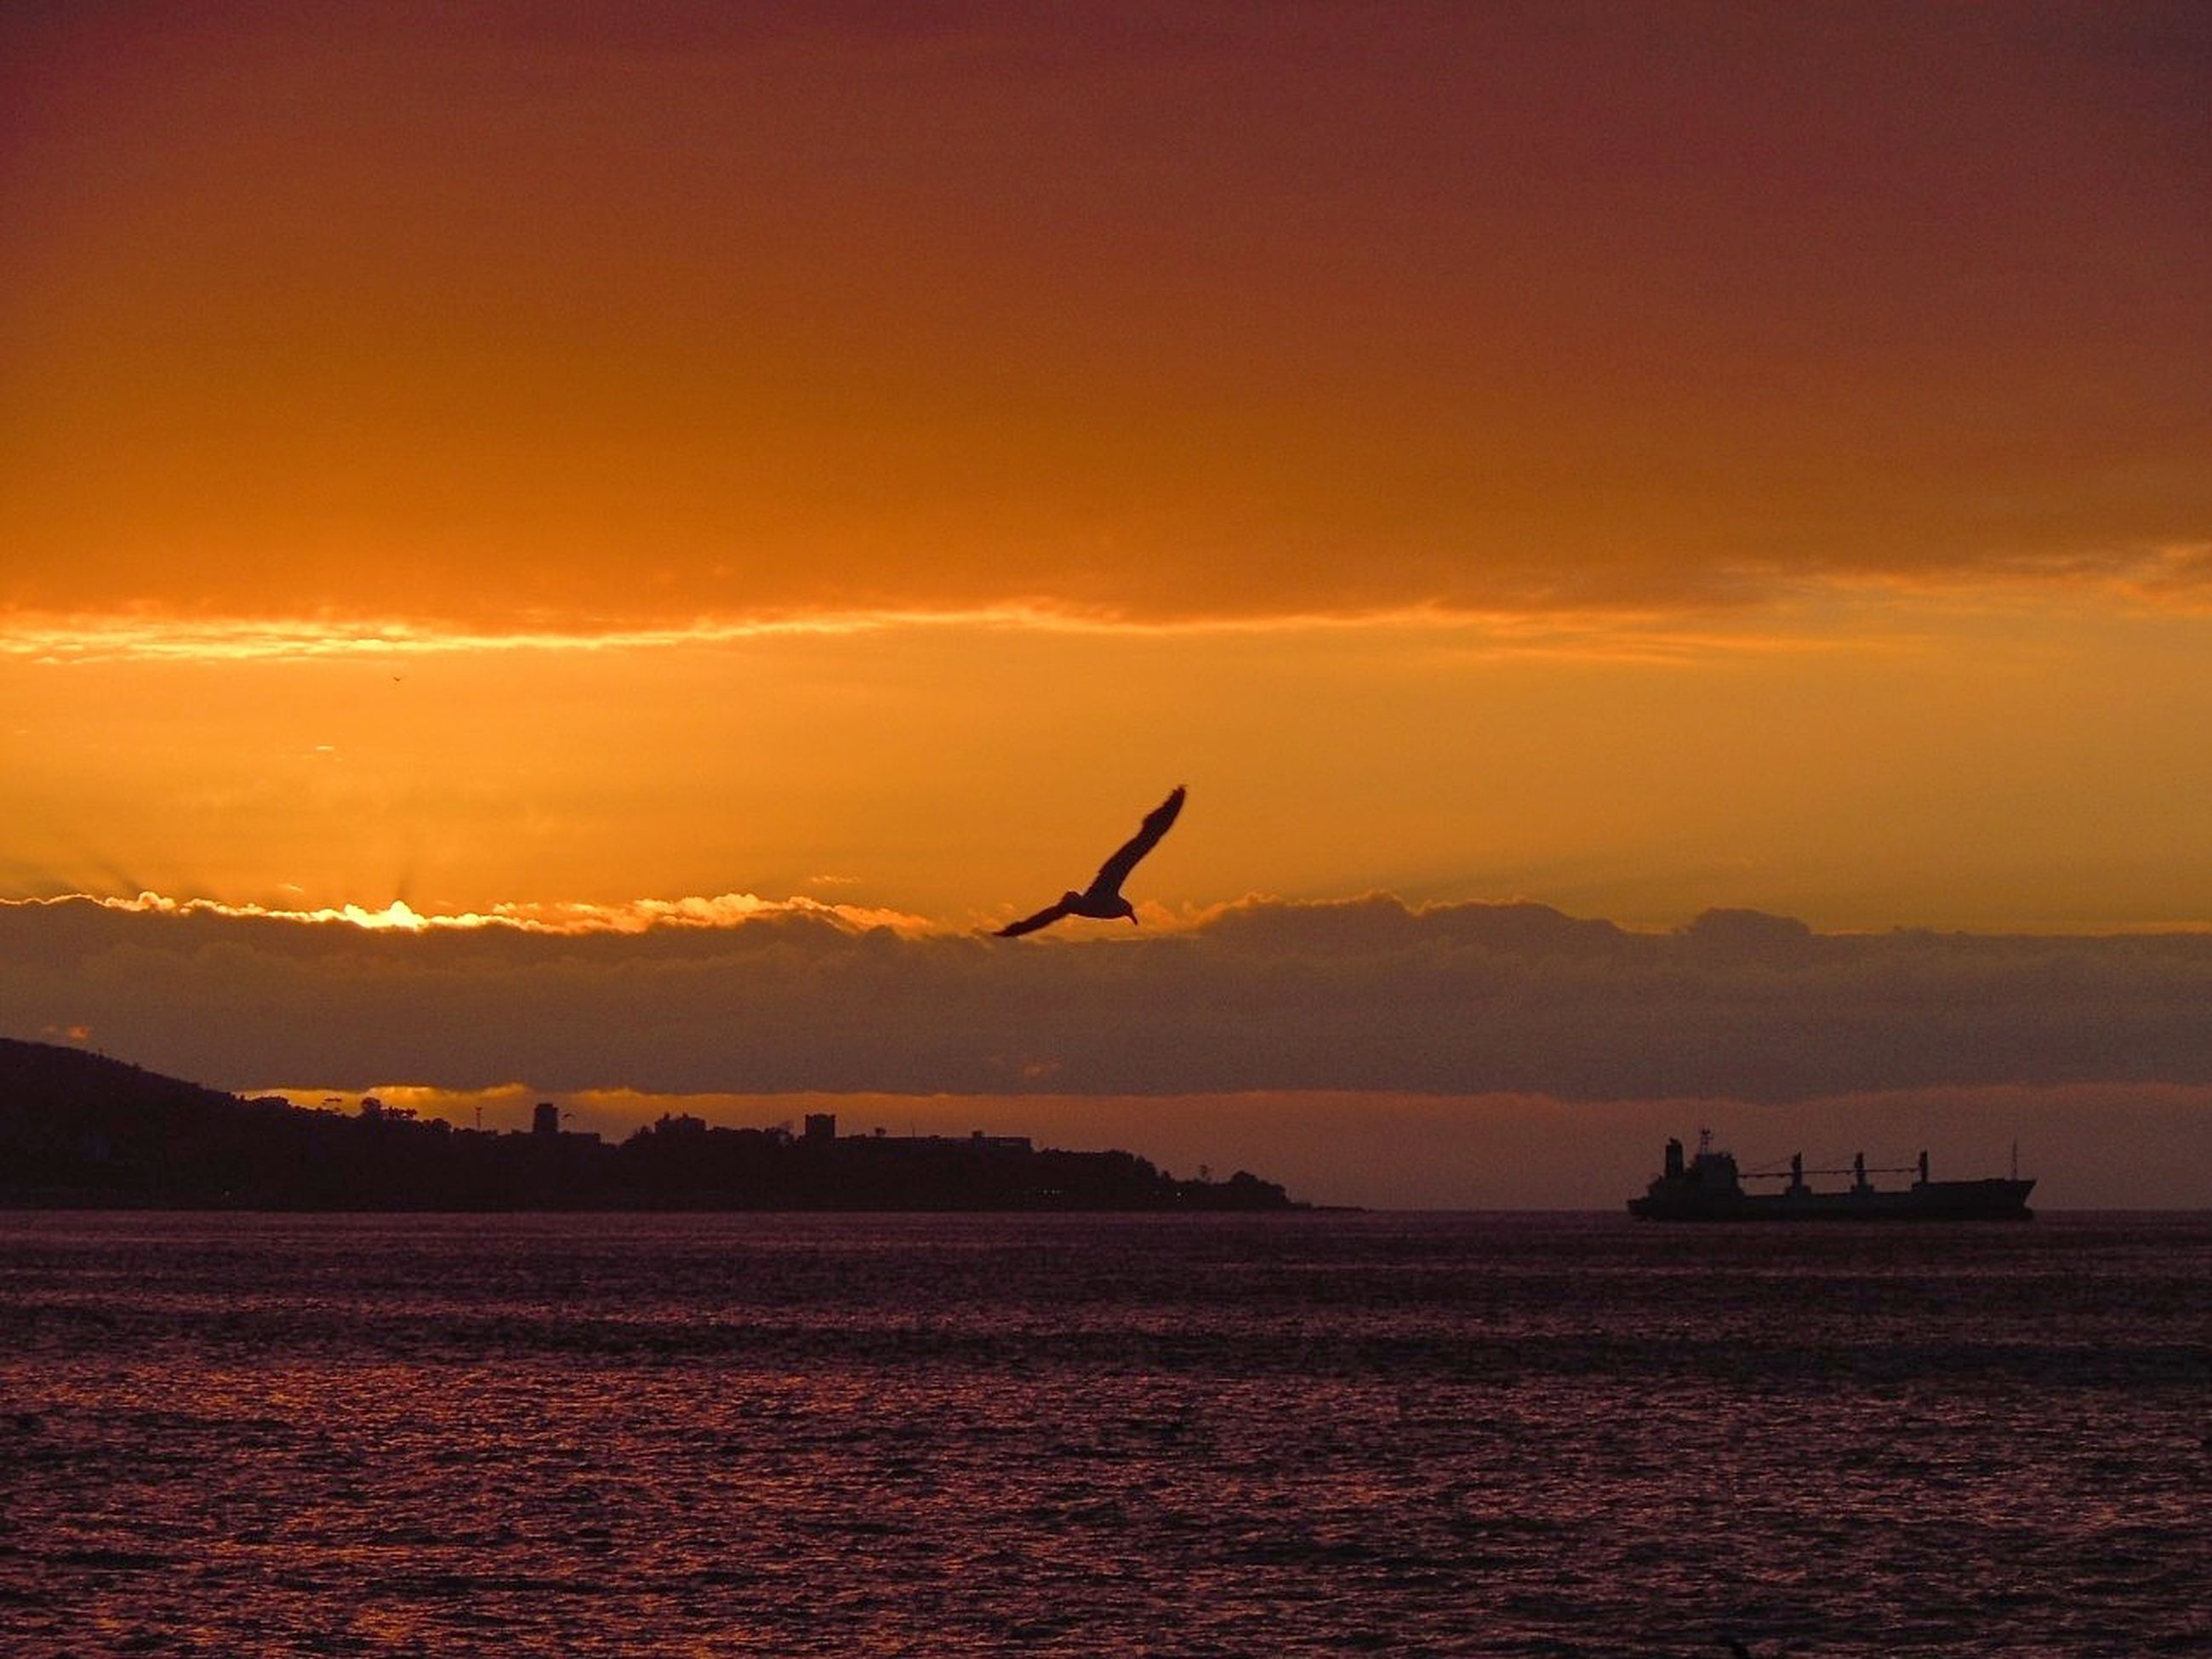 sunset, sky, animal themes, bird, vertebrate, animal wildlife, water, animal, animals in the wild, orange color, silhouette, scenics - nature, one animal, beauty in nature, flying, sea, cloud - sky, waterfront, mode of transportation, no people, outdoors